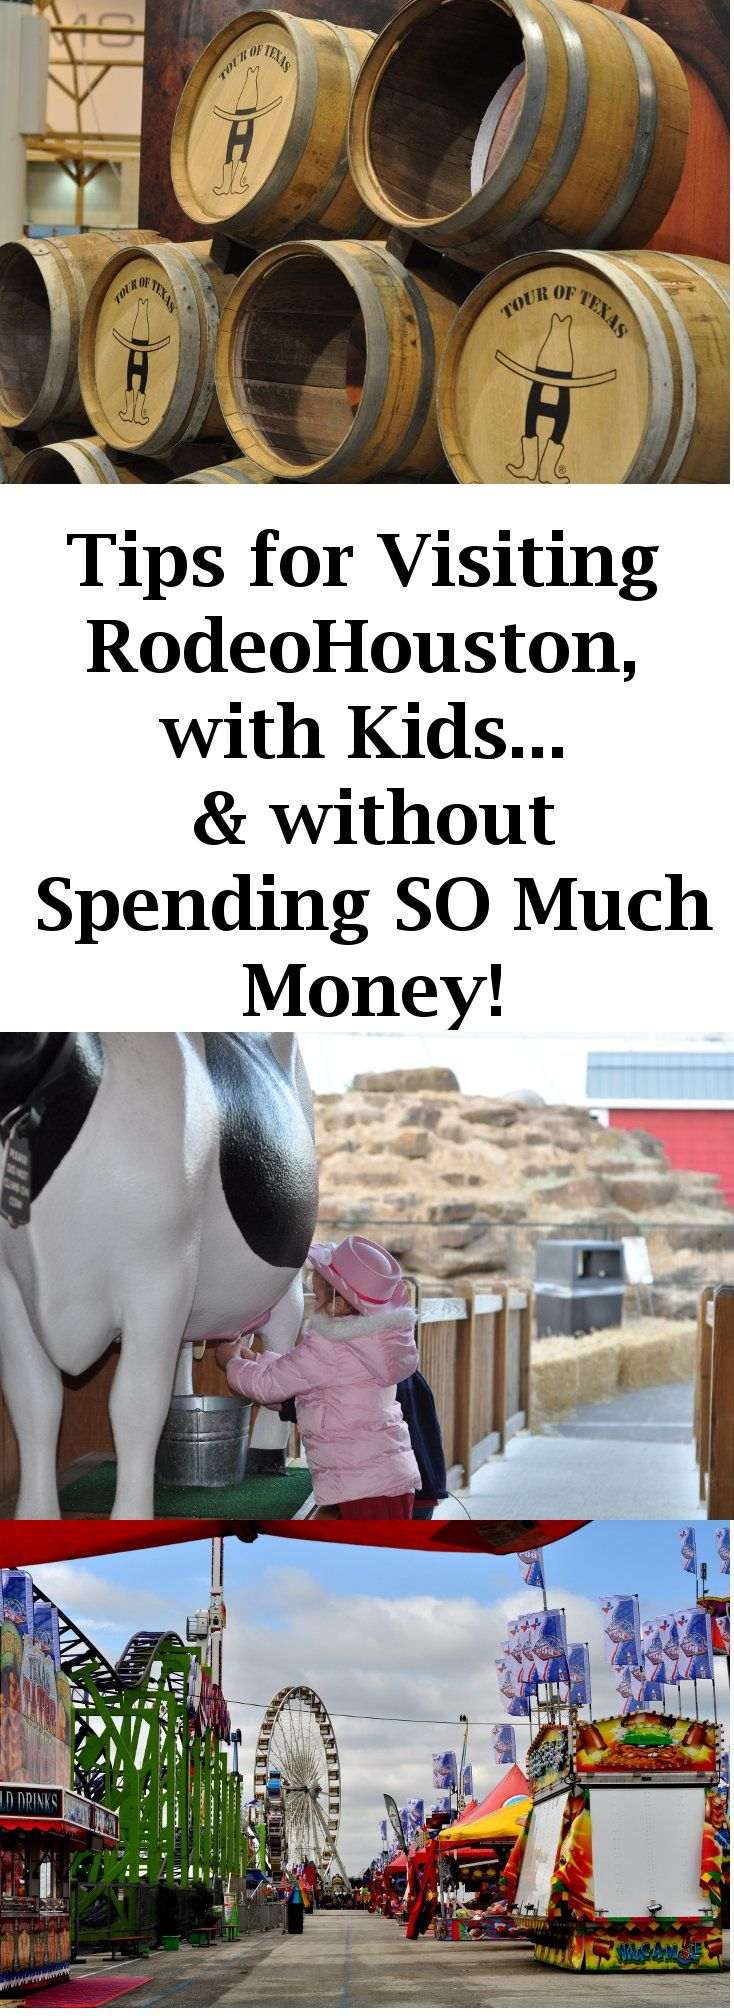 Rodeo Houston 2016: Things to Do with Kids, Entertainment, How to Beat the Crowds & Save Money